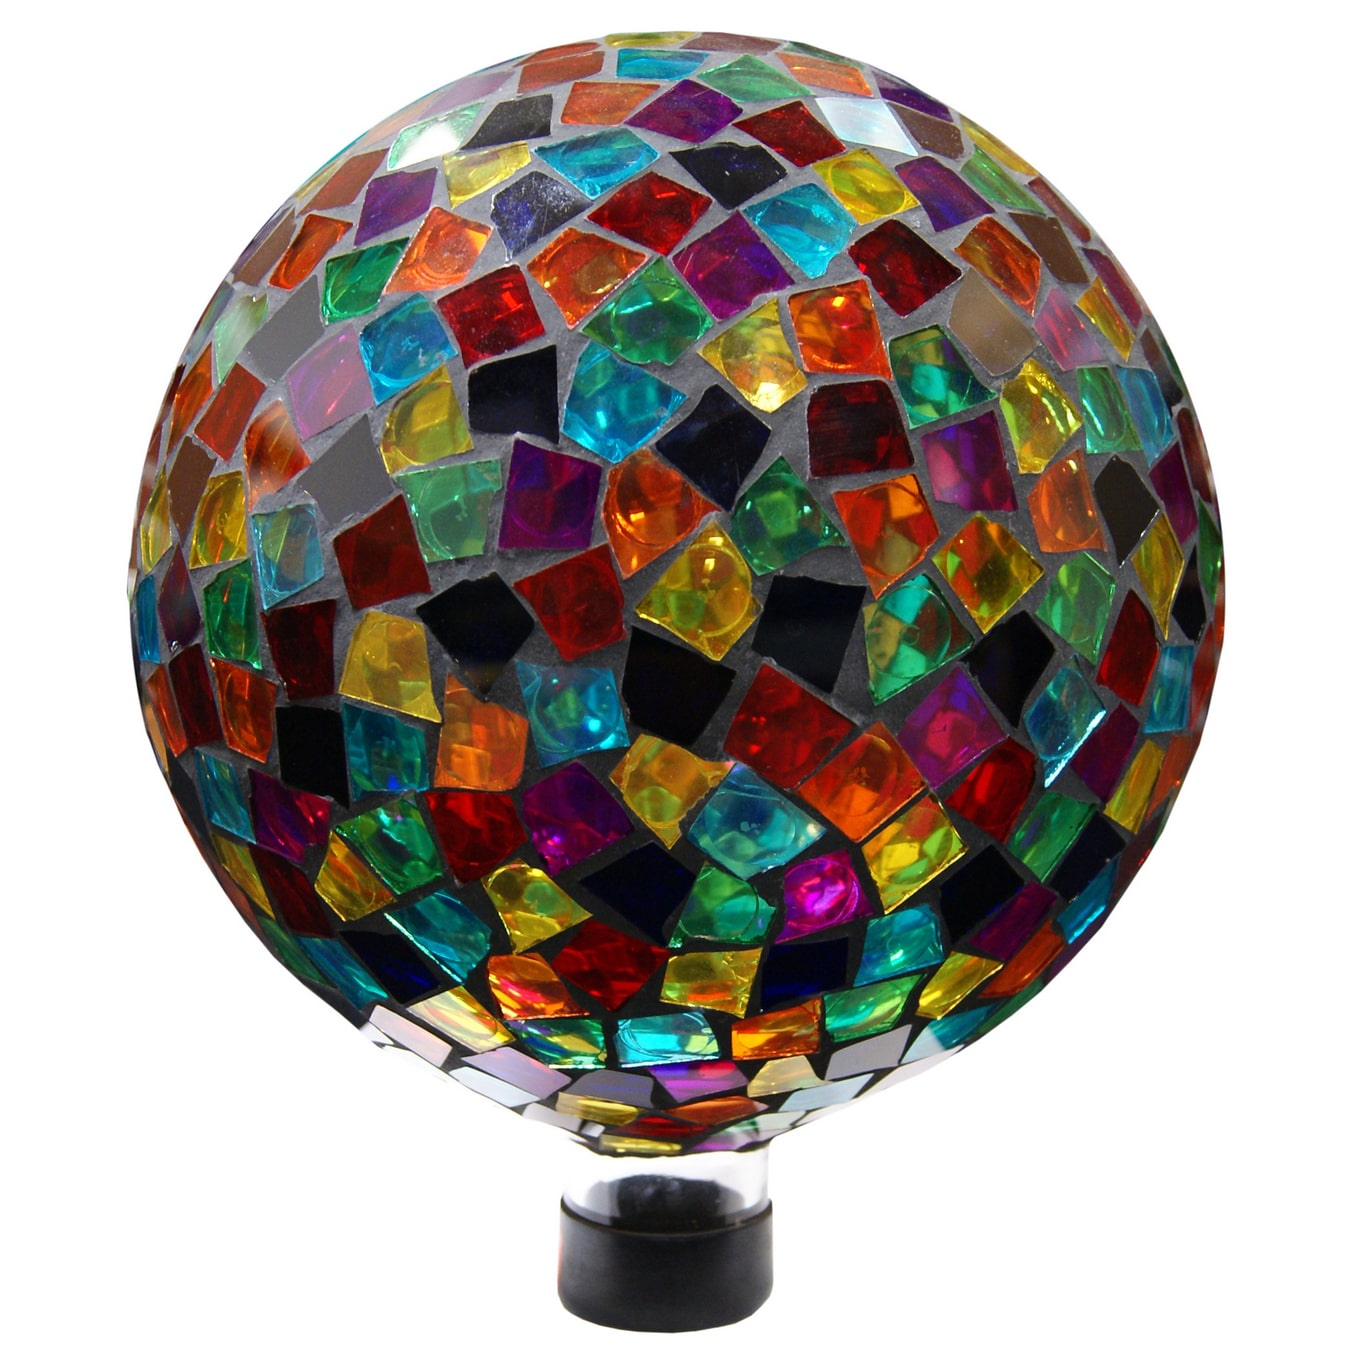 Alpine 10-inch Red  Blue  Yellow Mosaic Gazing Ball by Overstock